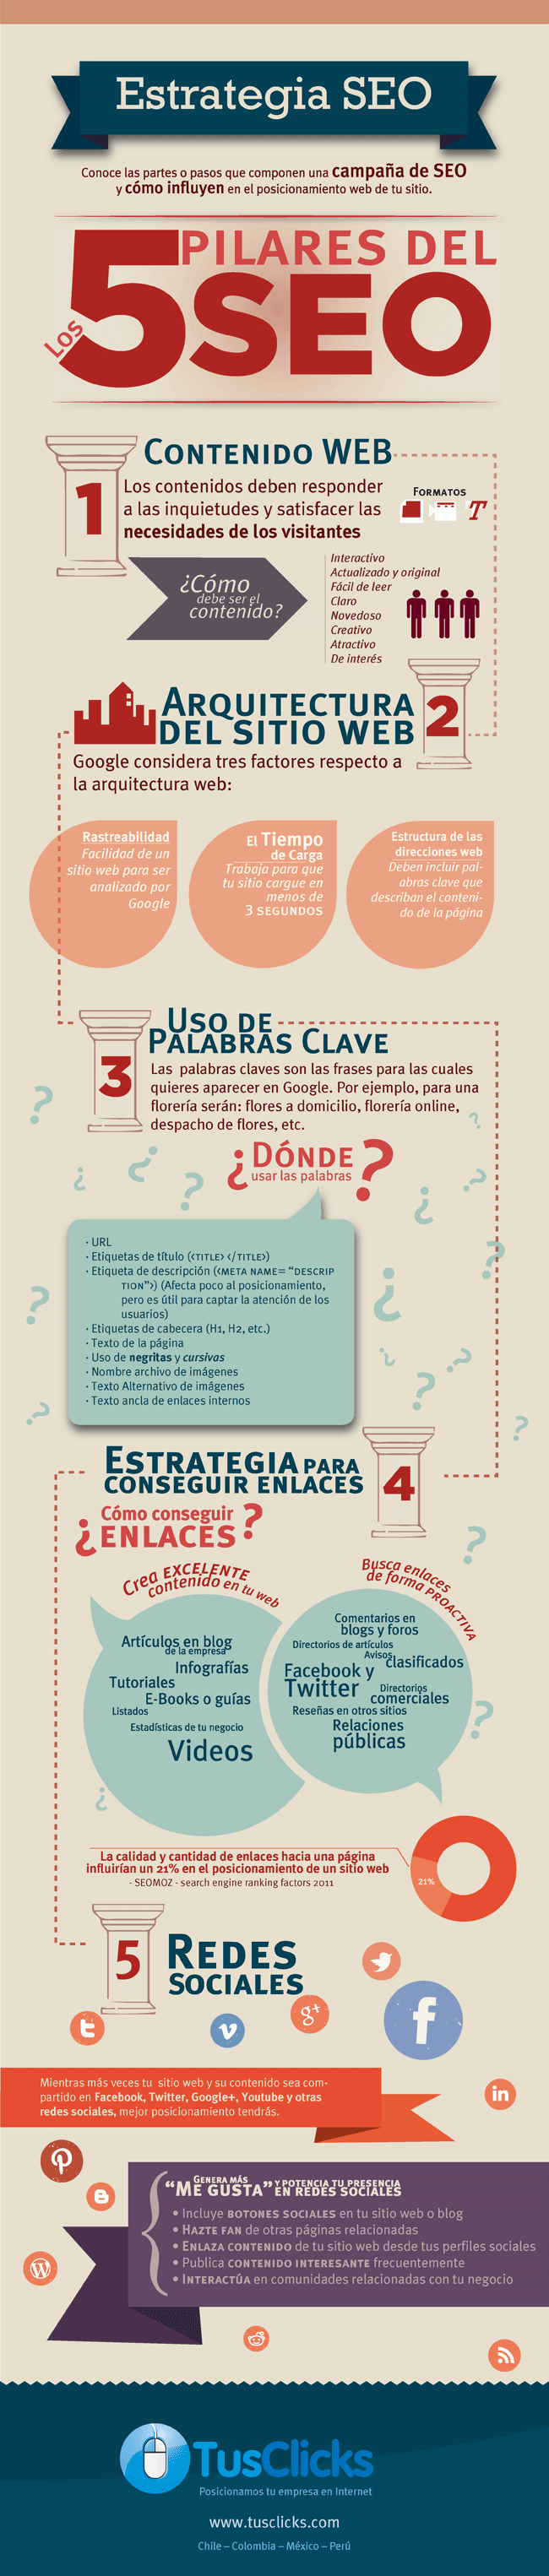 pilares-seo-marketing-online-digital